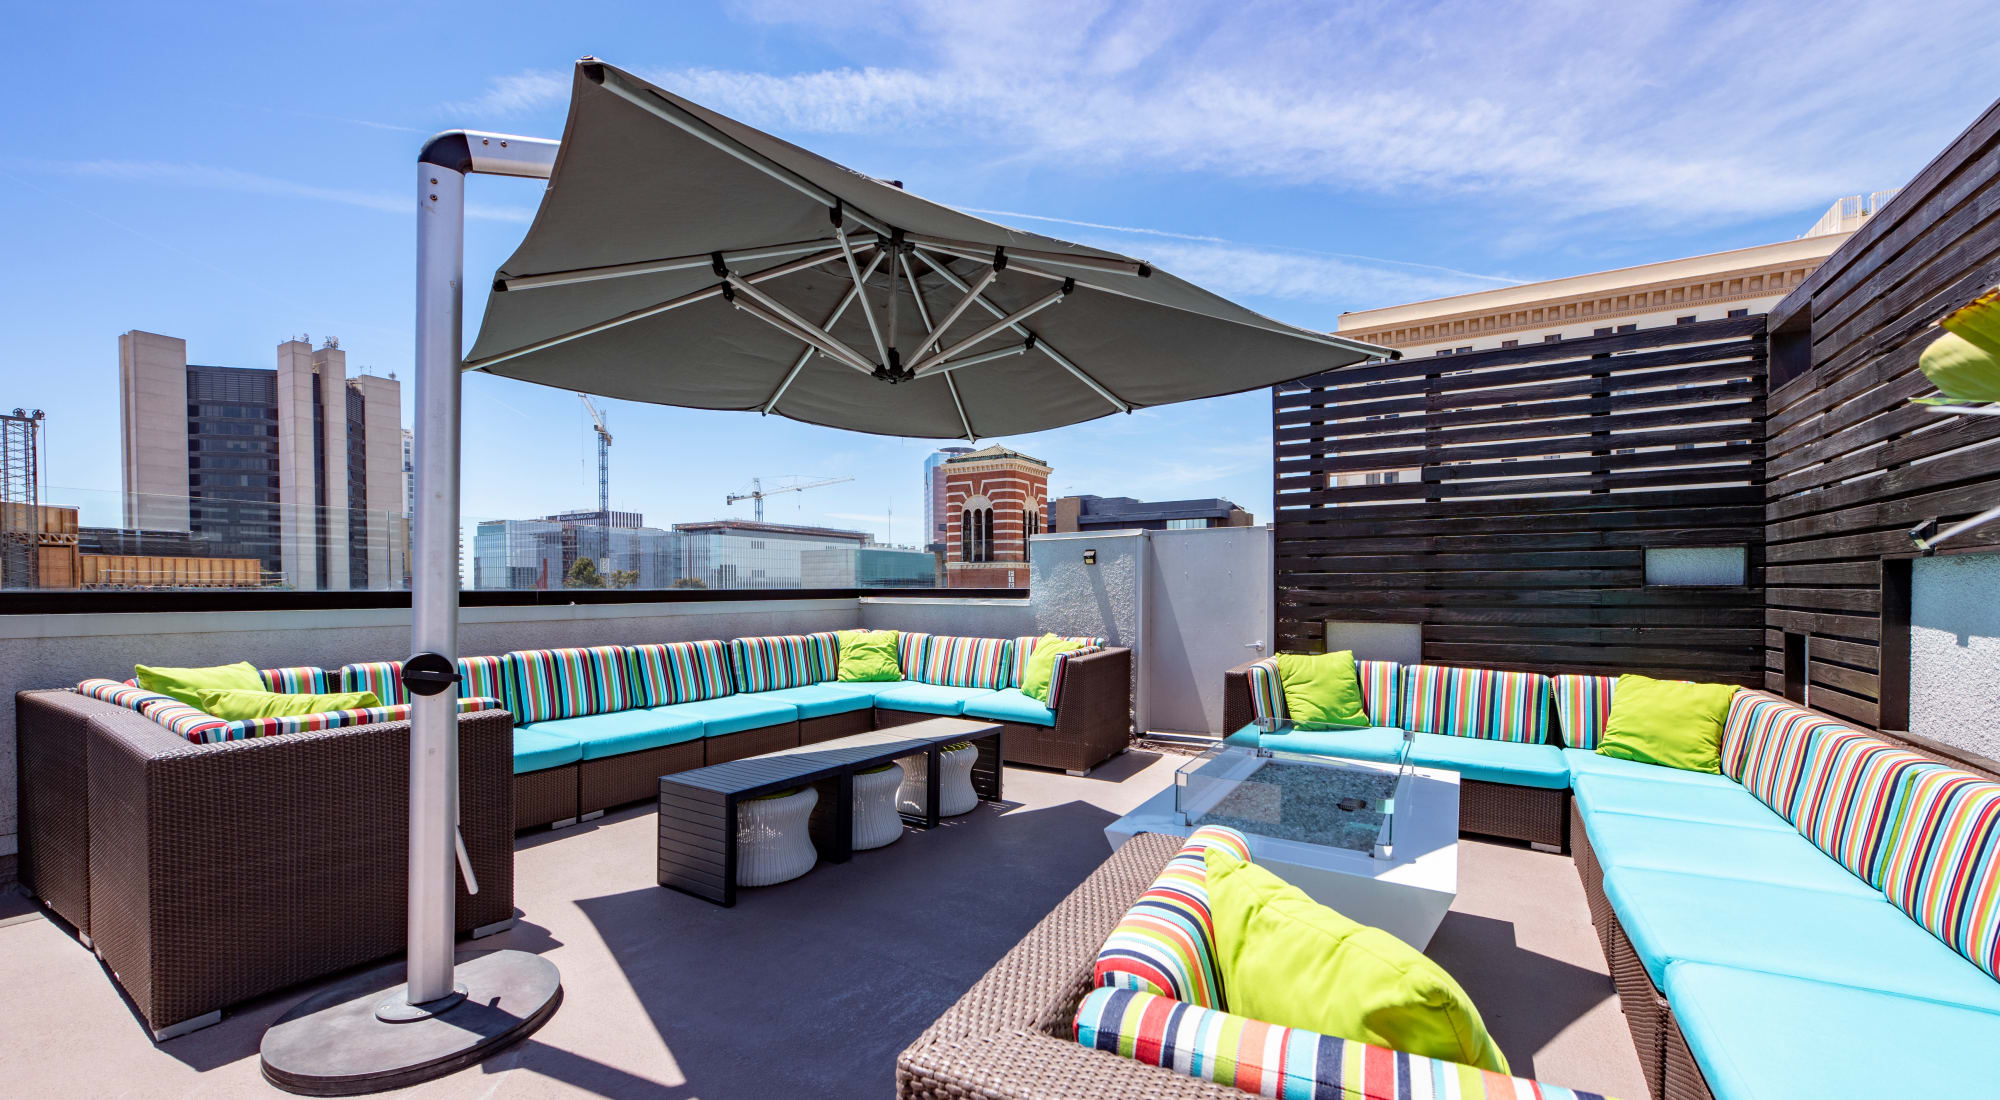 Amenities at Sofi at 3rd in Long Beach, California